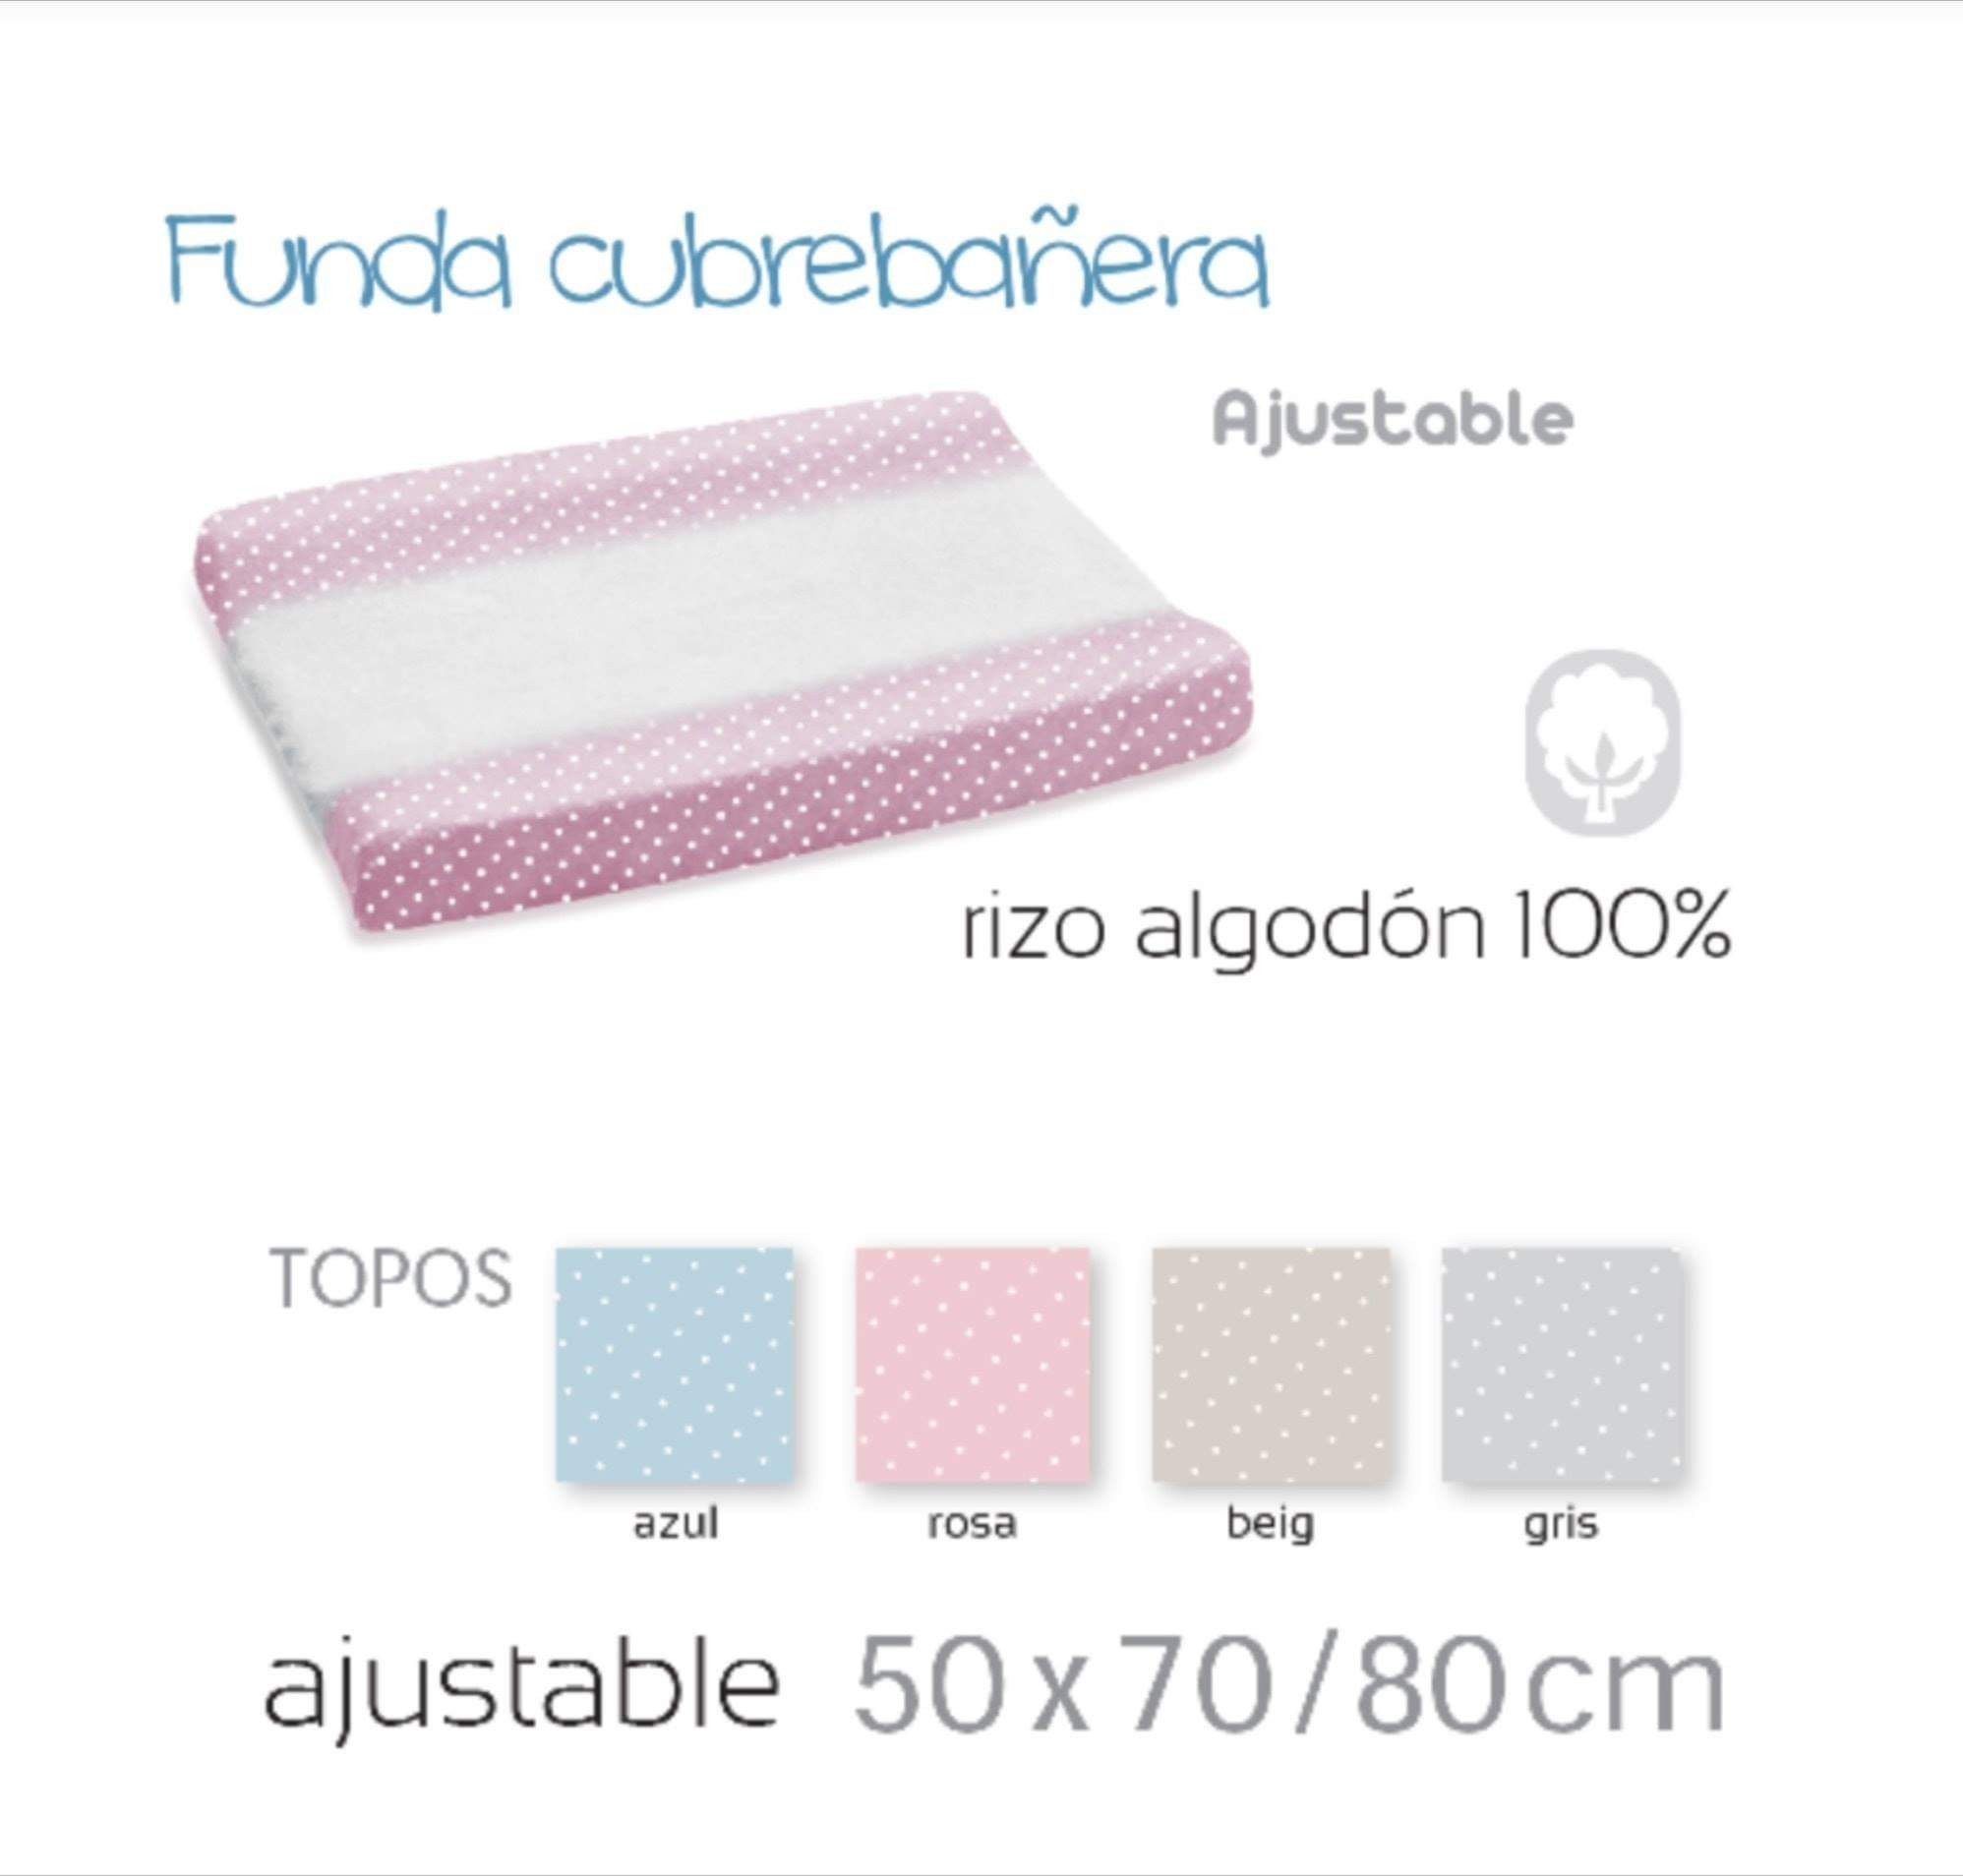 Funda cubrebañera Topitos